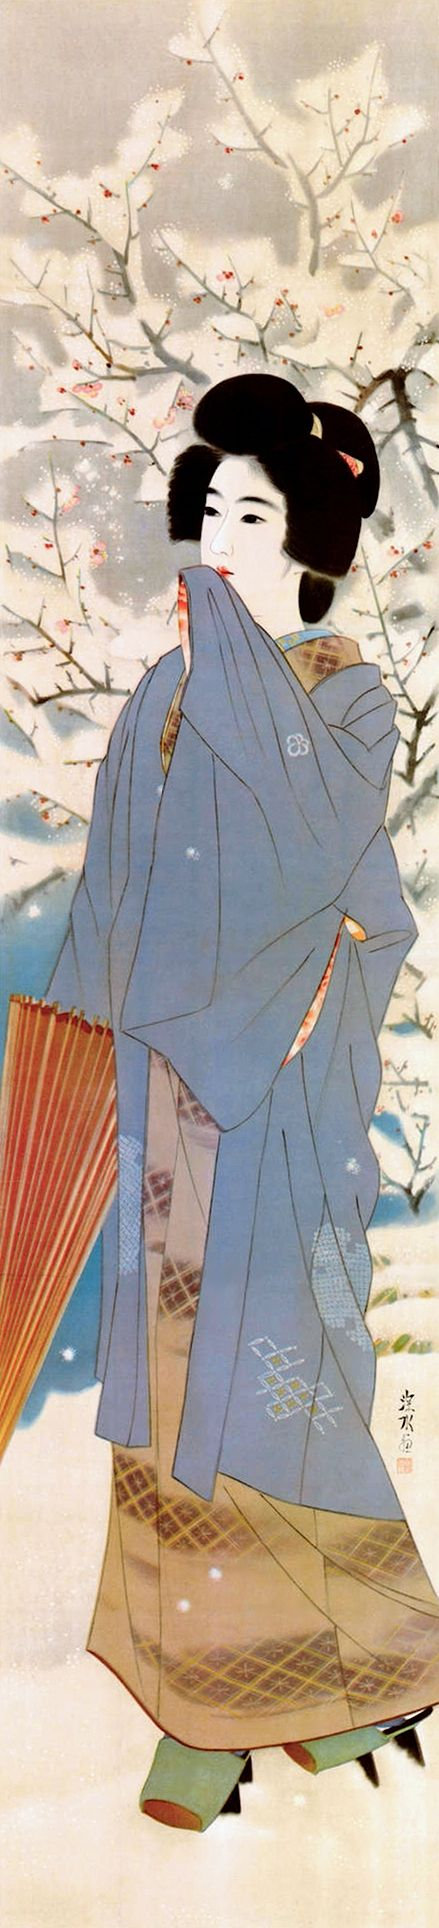 Ito Shinsui (1900) .. look at that geeta (wooden shoes) with snow protection..